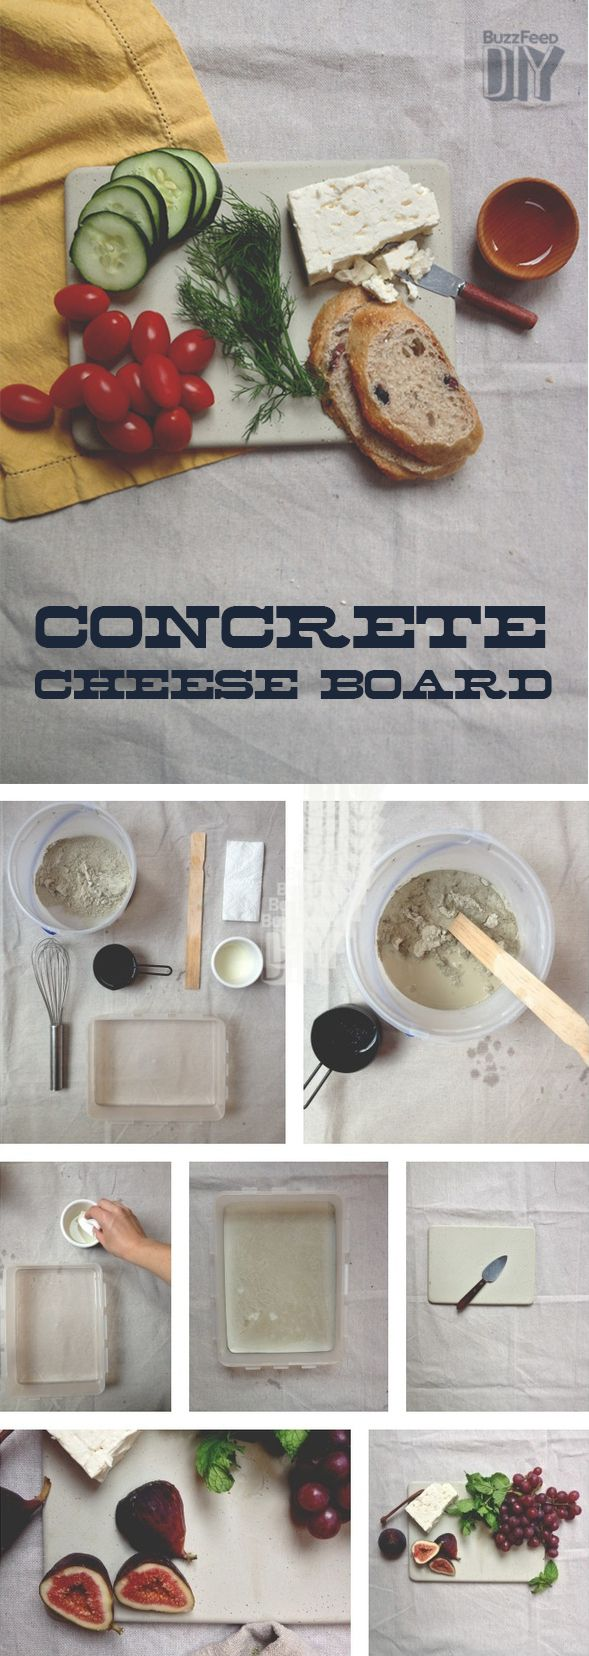 2. Concrete Cheese Board   5 Gorgeous DIY Cheese Boards To Impress Your Guests